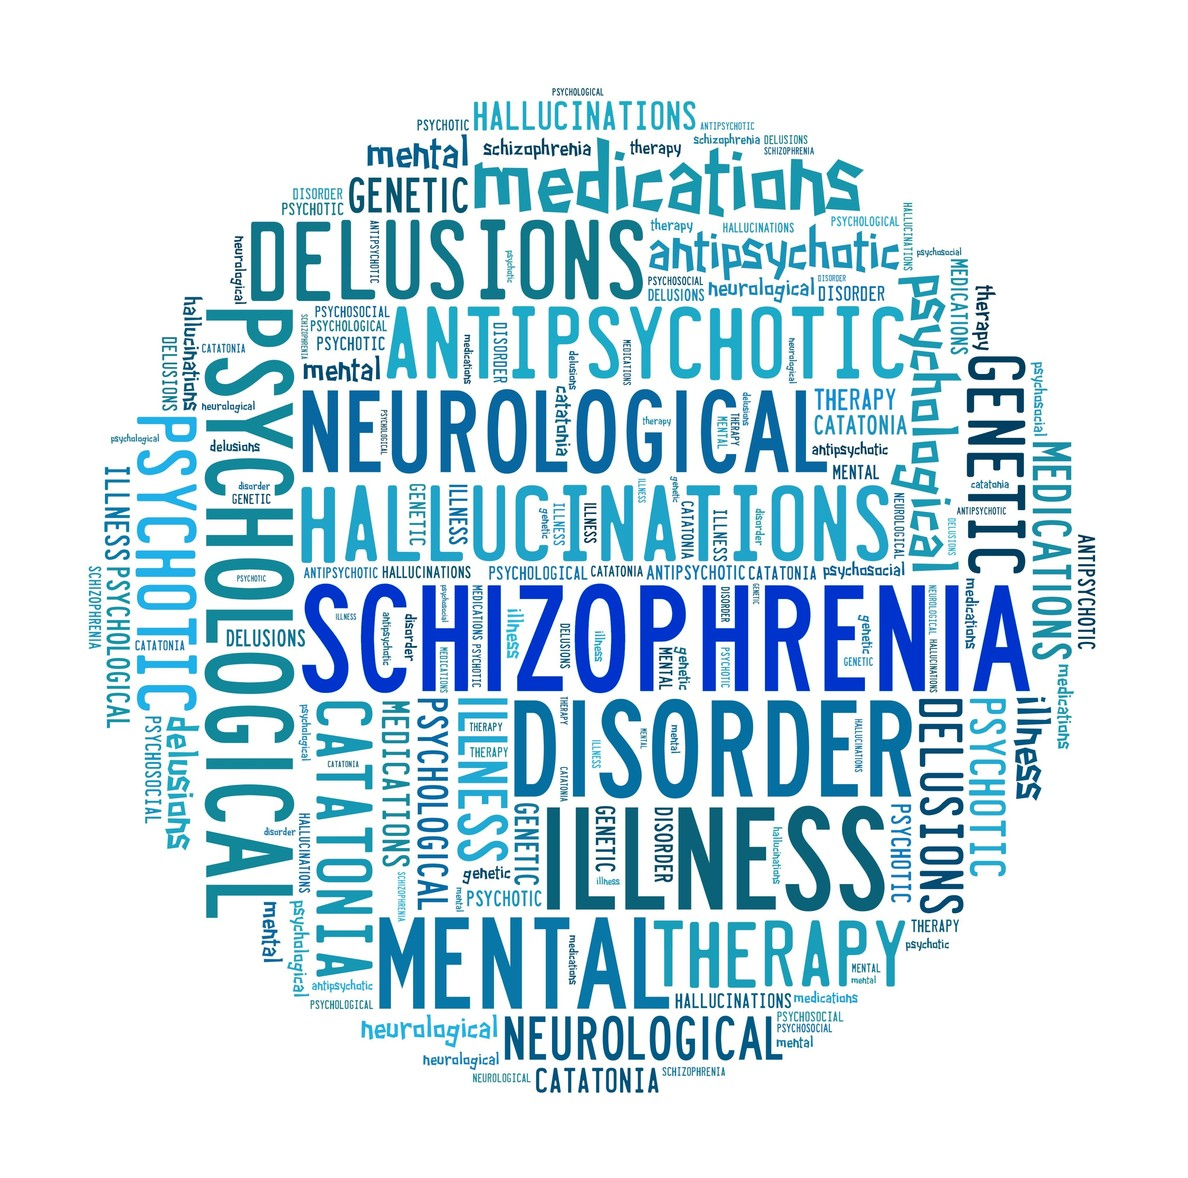 schizophrenia dating website When your dating profile includes mental illness  bipolar disorder, and schizophrenia and while dating is a  online dating websites dedicated to.